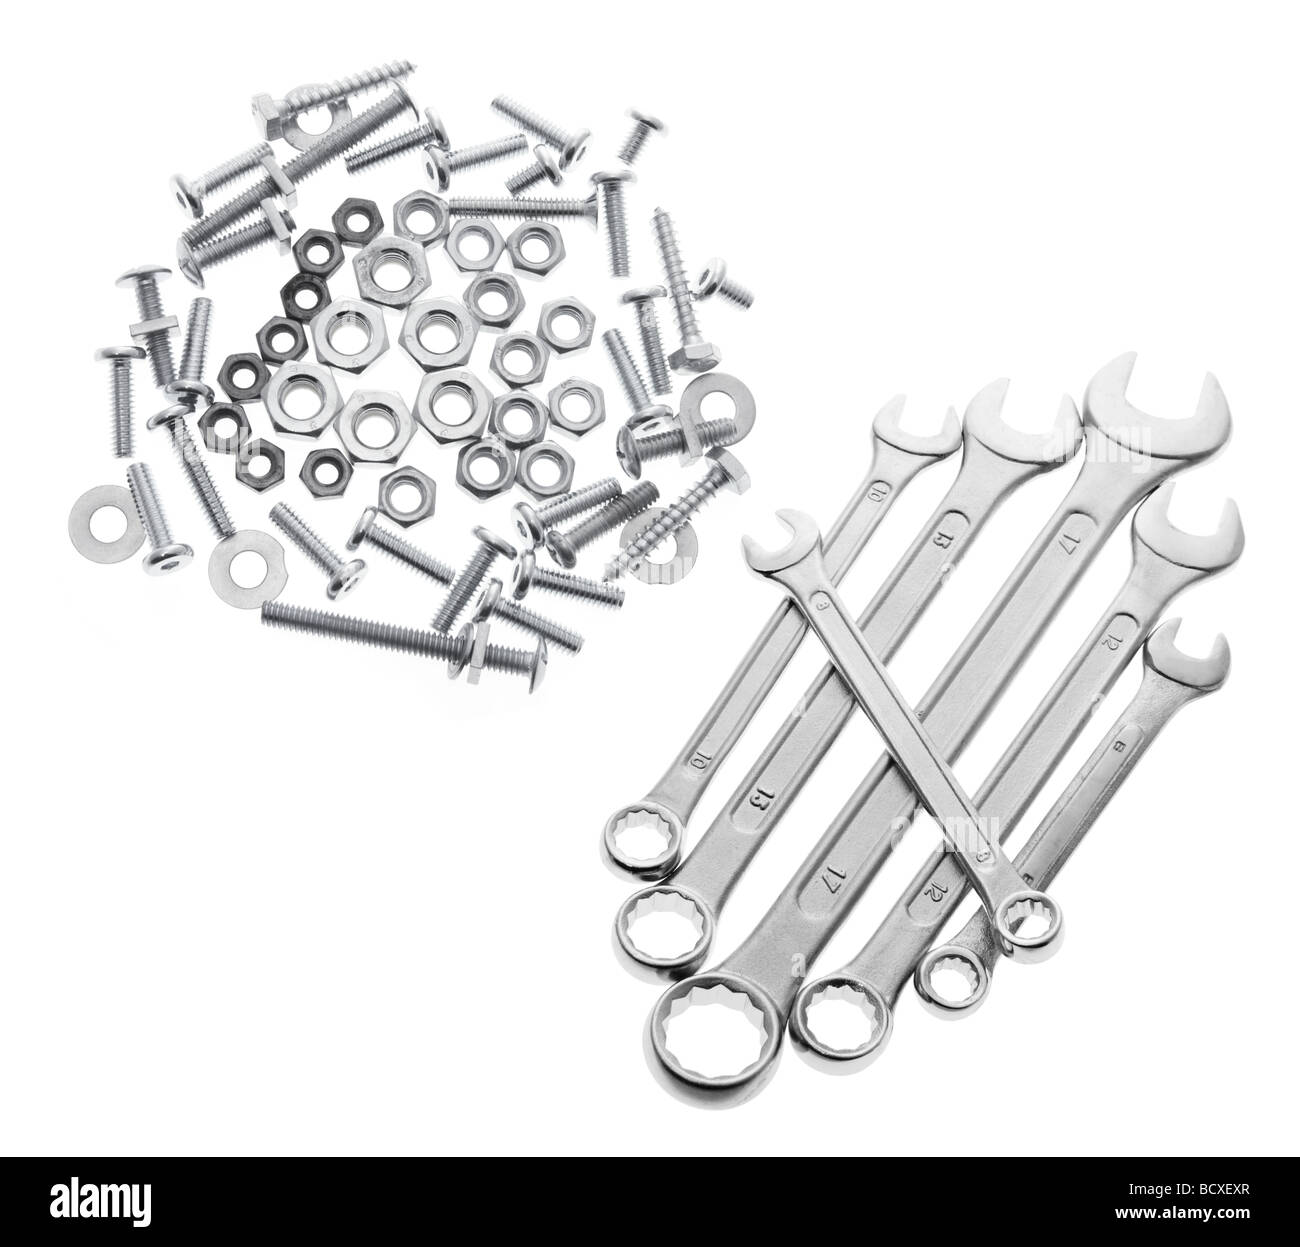 Spanners with Bolts and Nuts - Stock Image